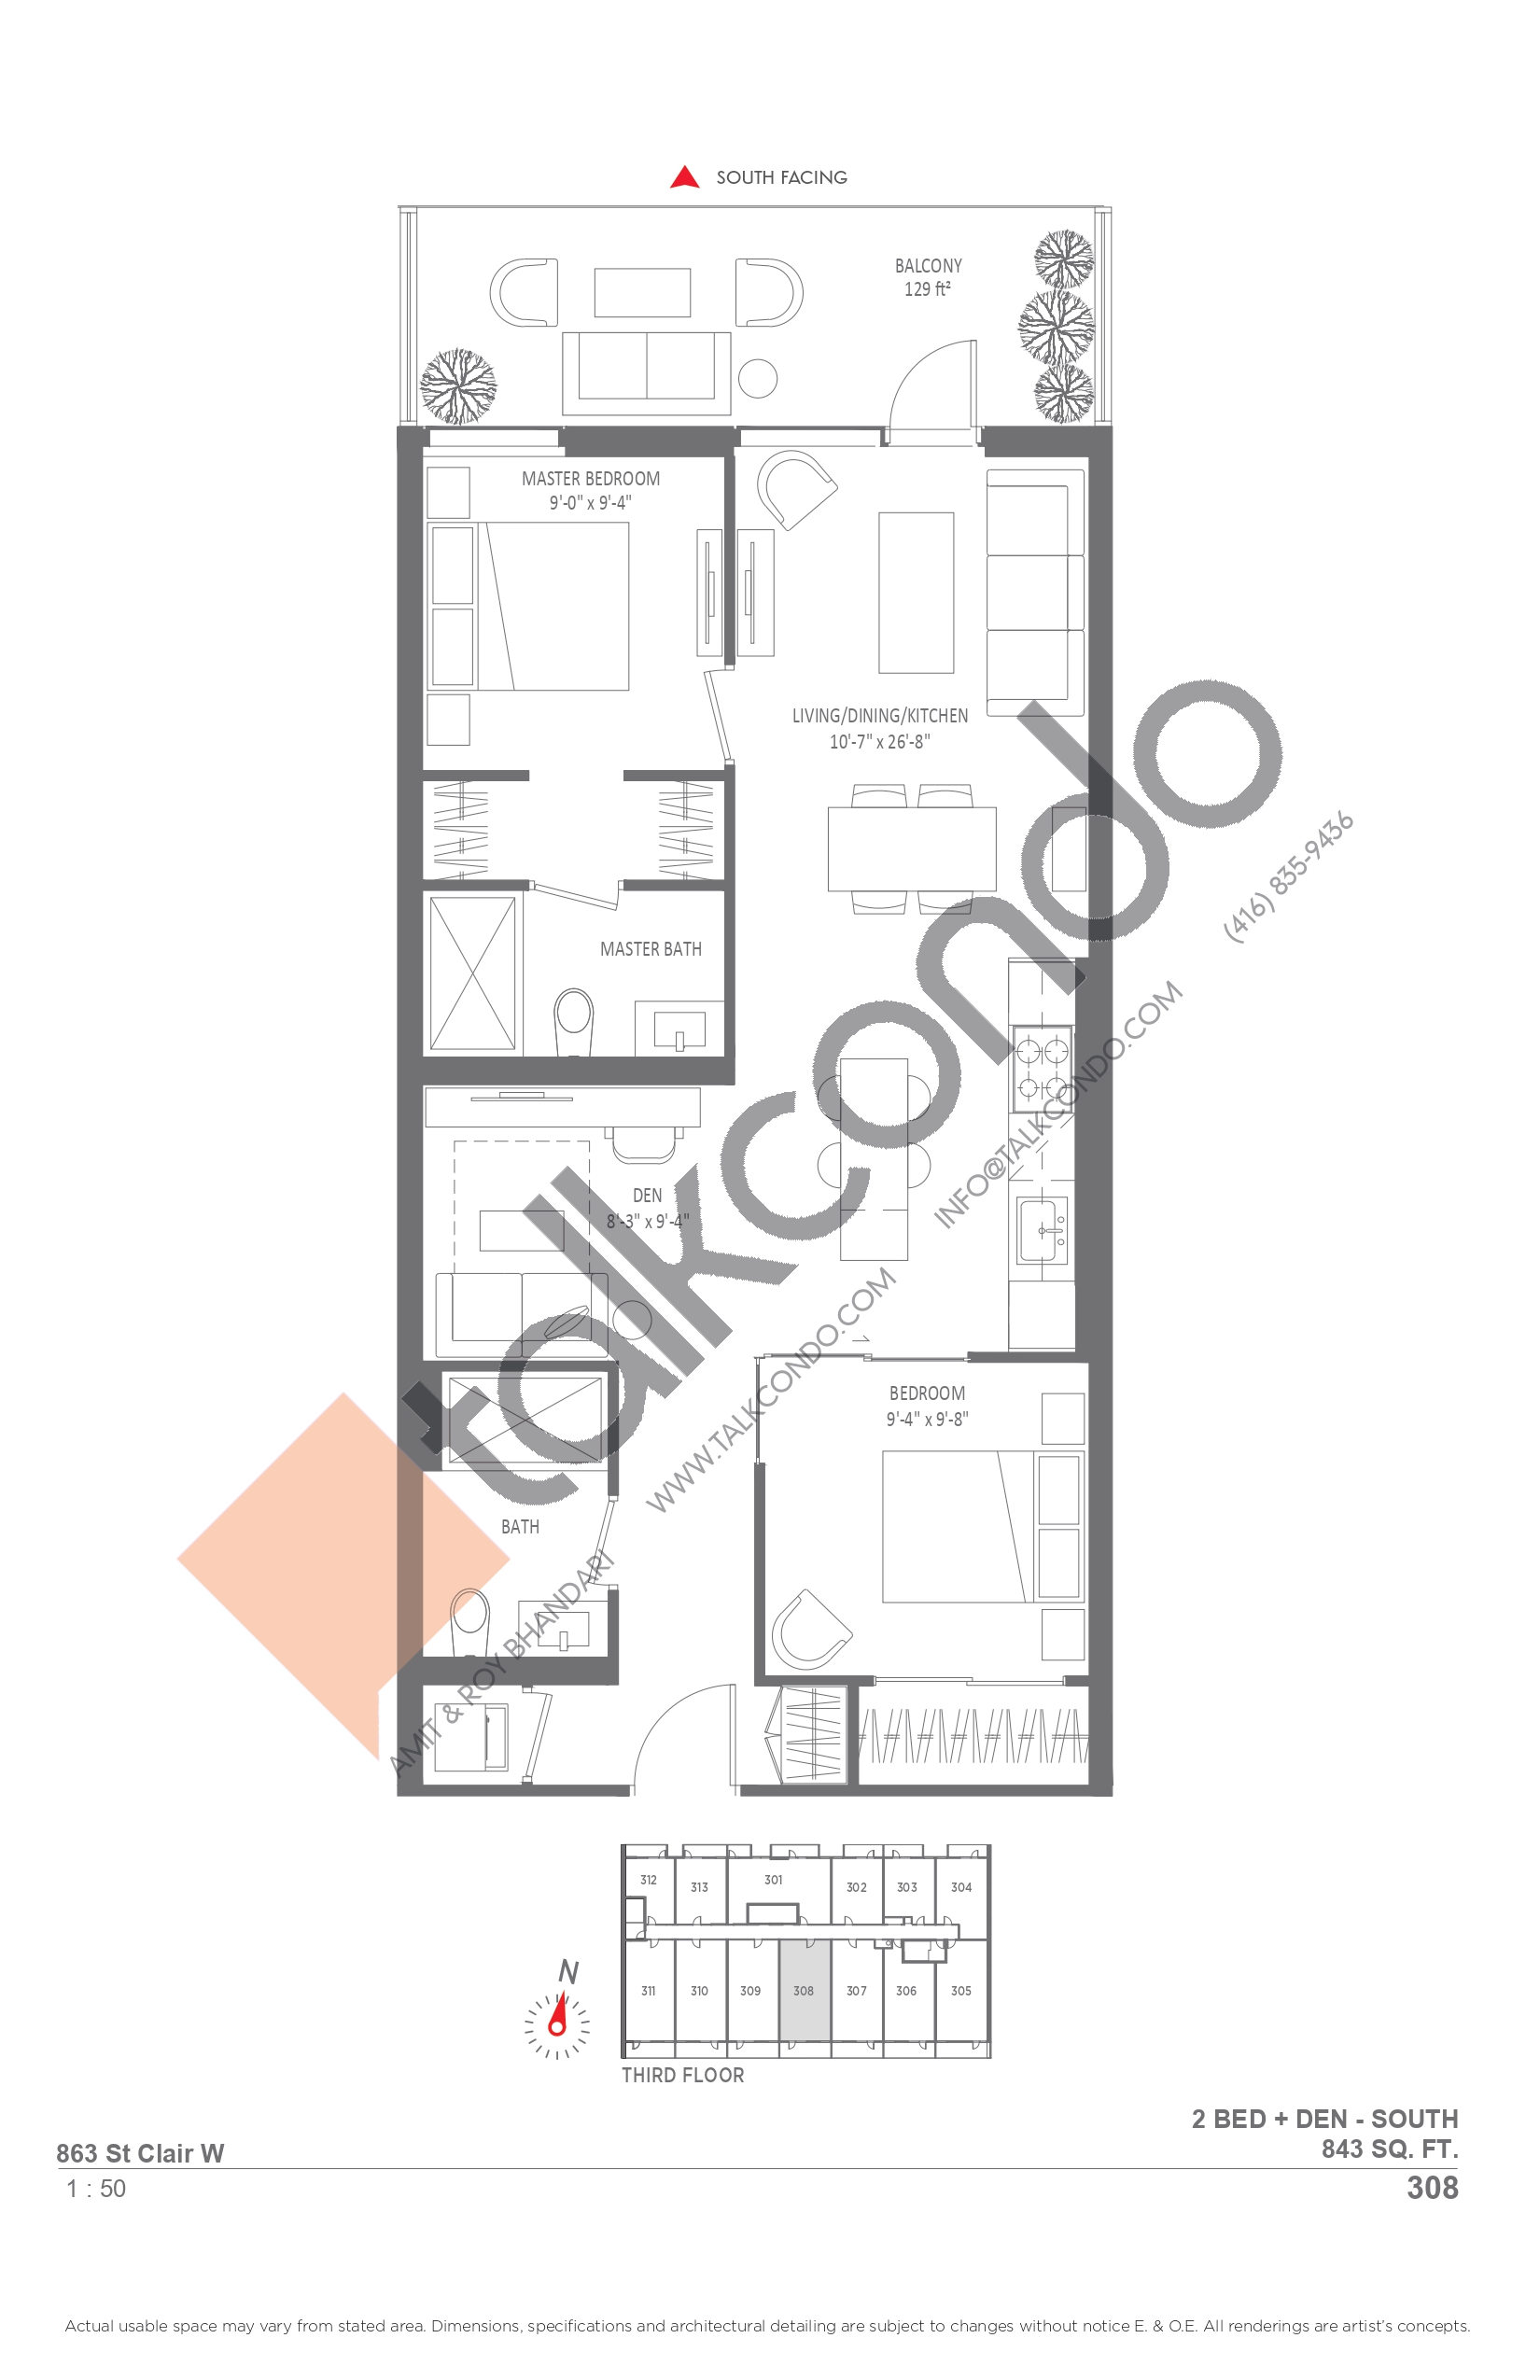 308 Floor Plan at Monza Condos - 843 sq.ft